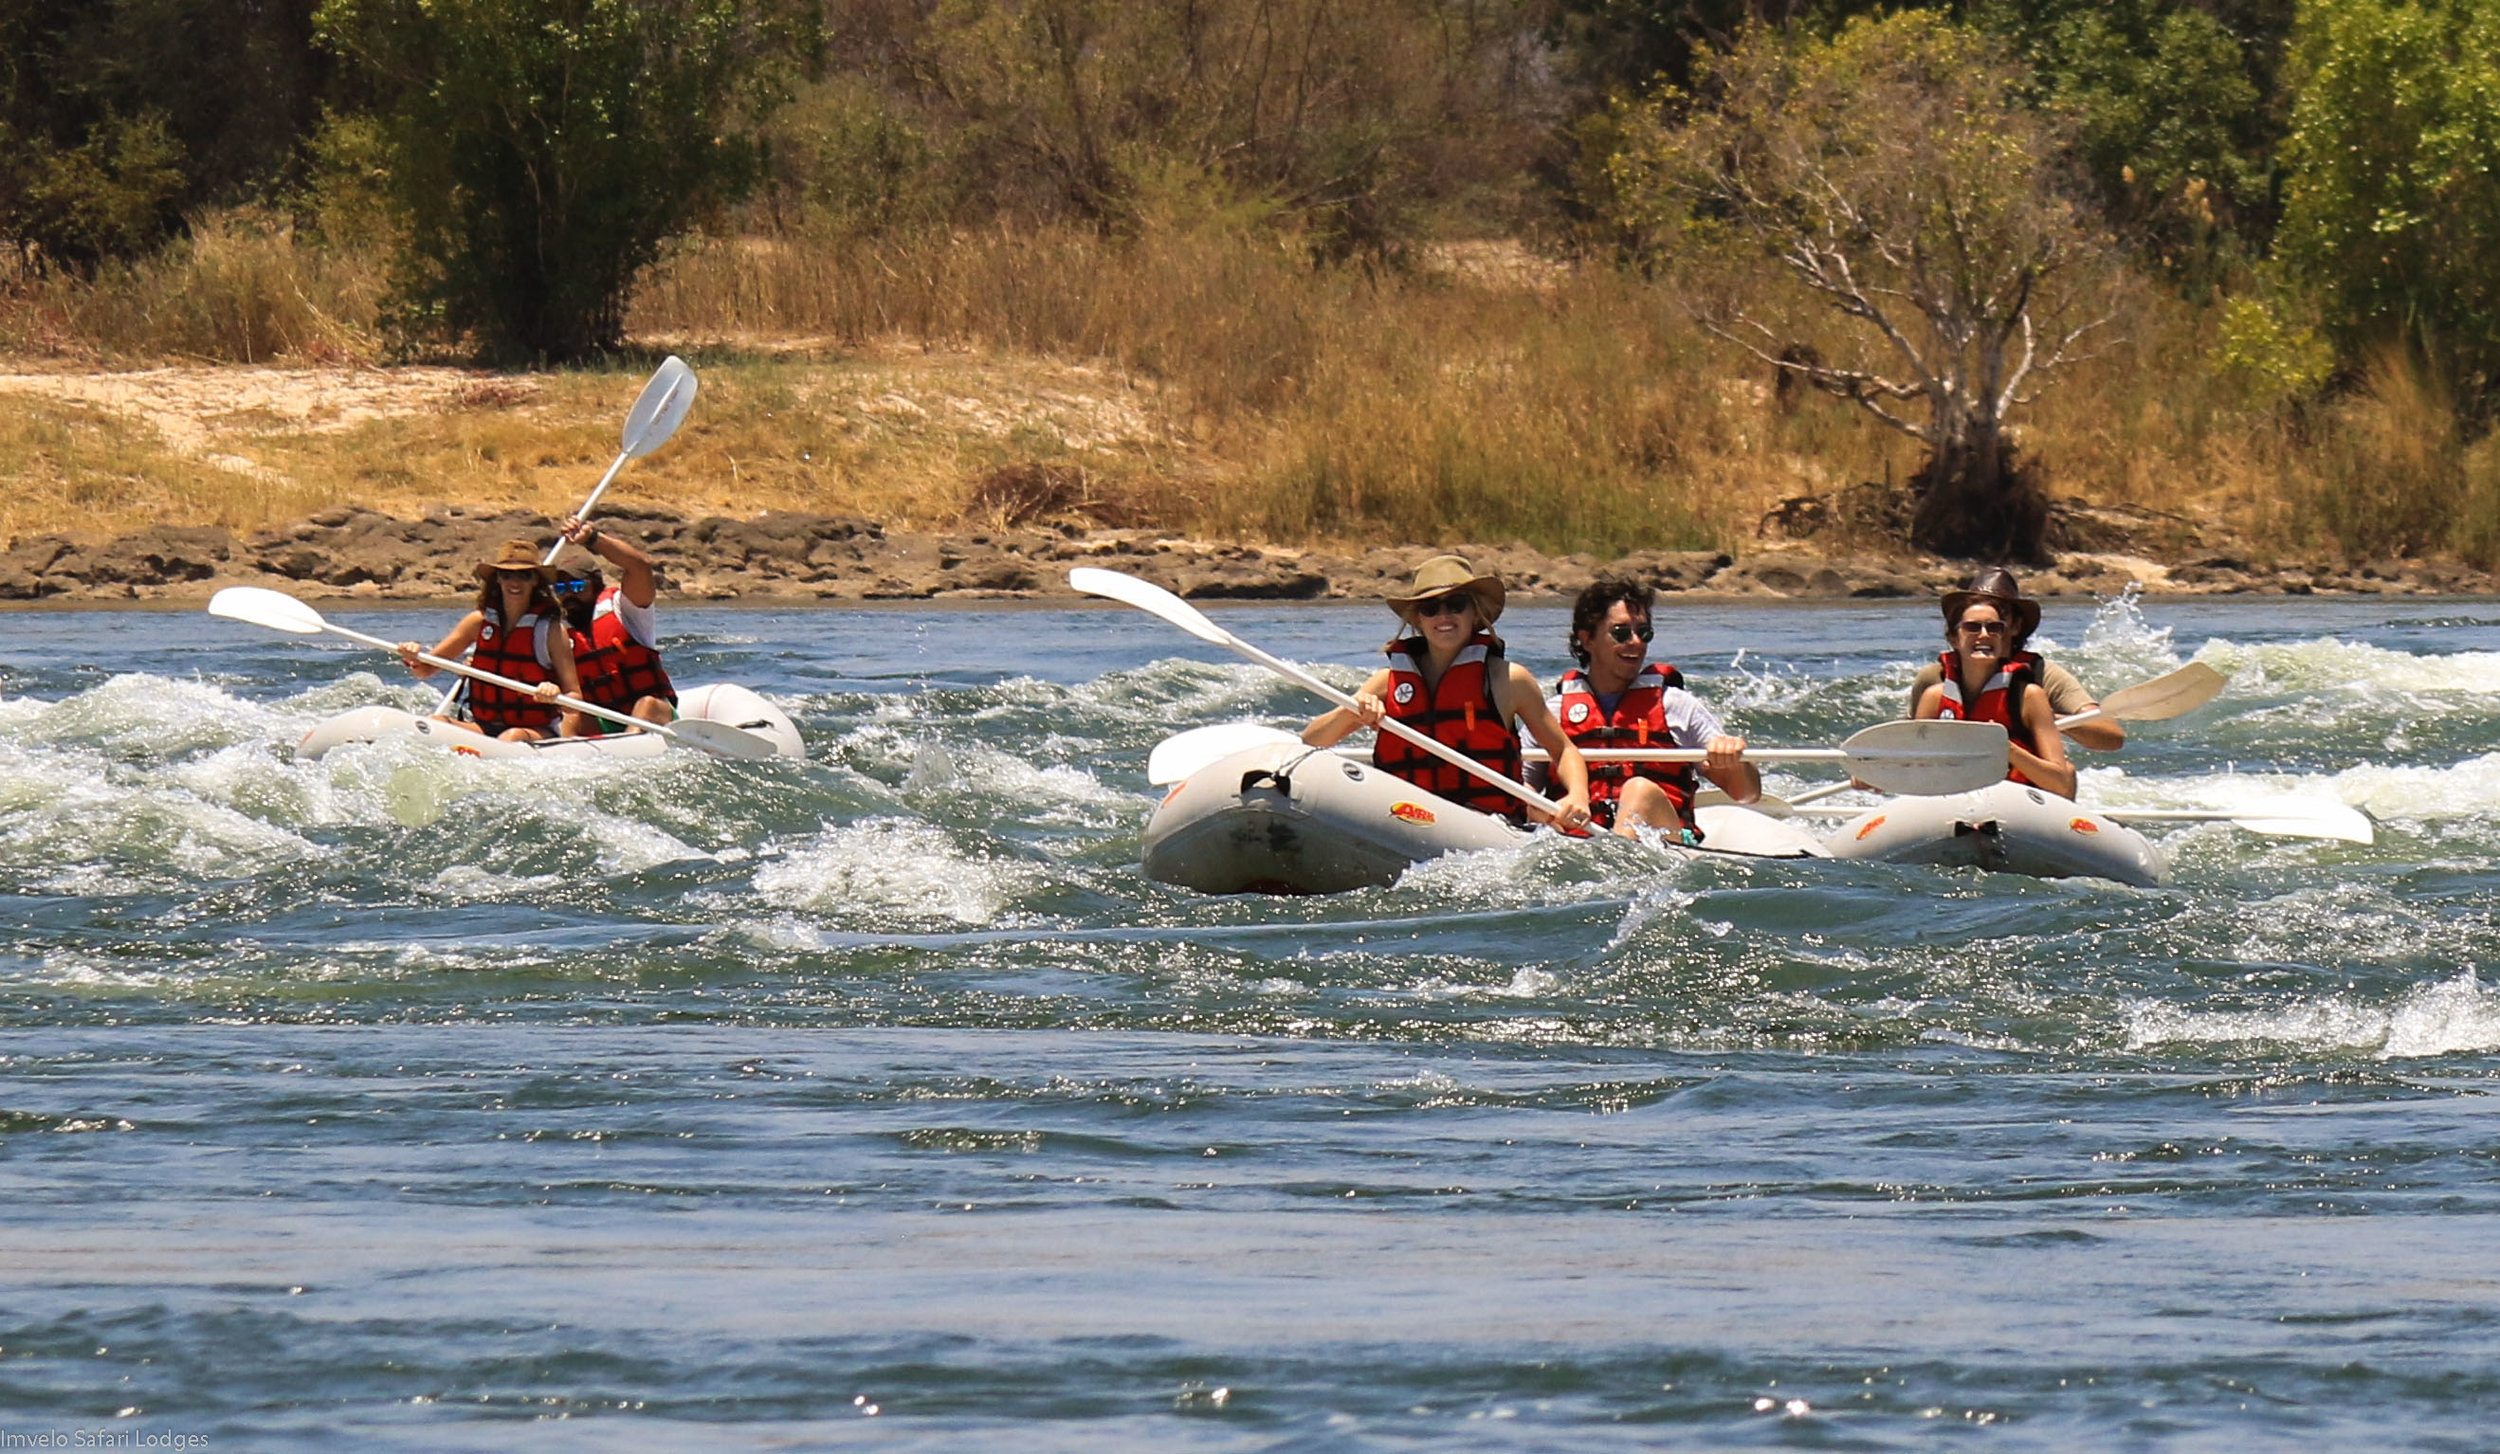 32b  Imvelo Safari Lodges - Zambezi Sands  - Inflatable canoes handle white water with ease.jpg